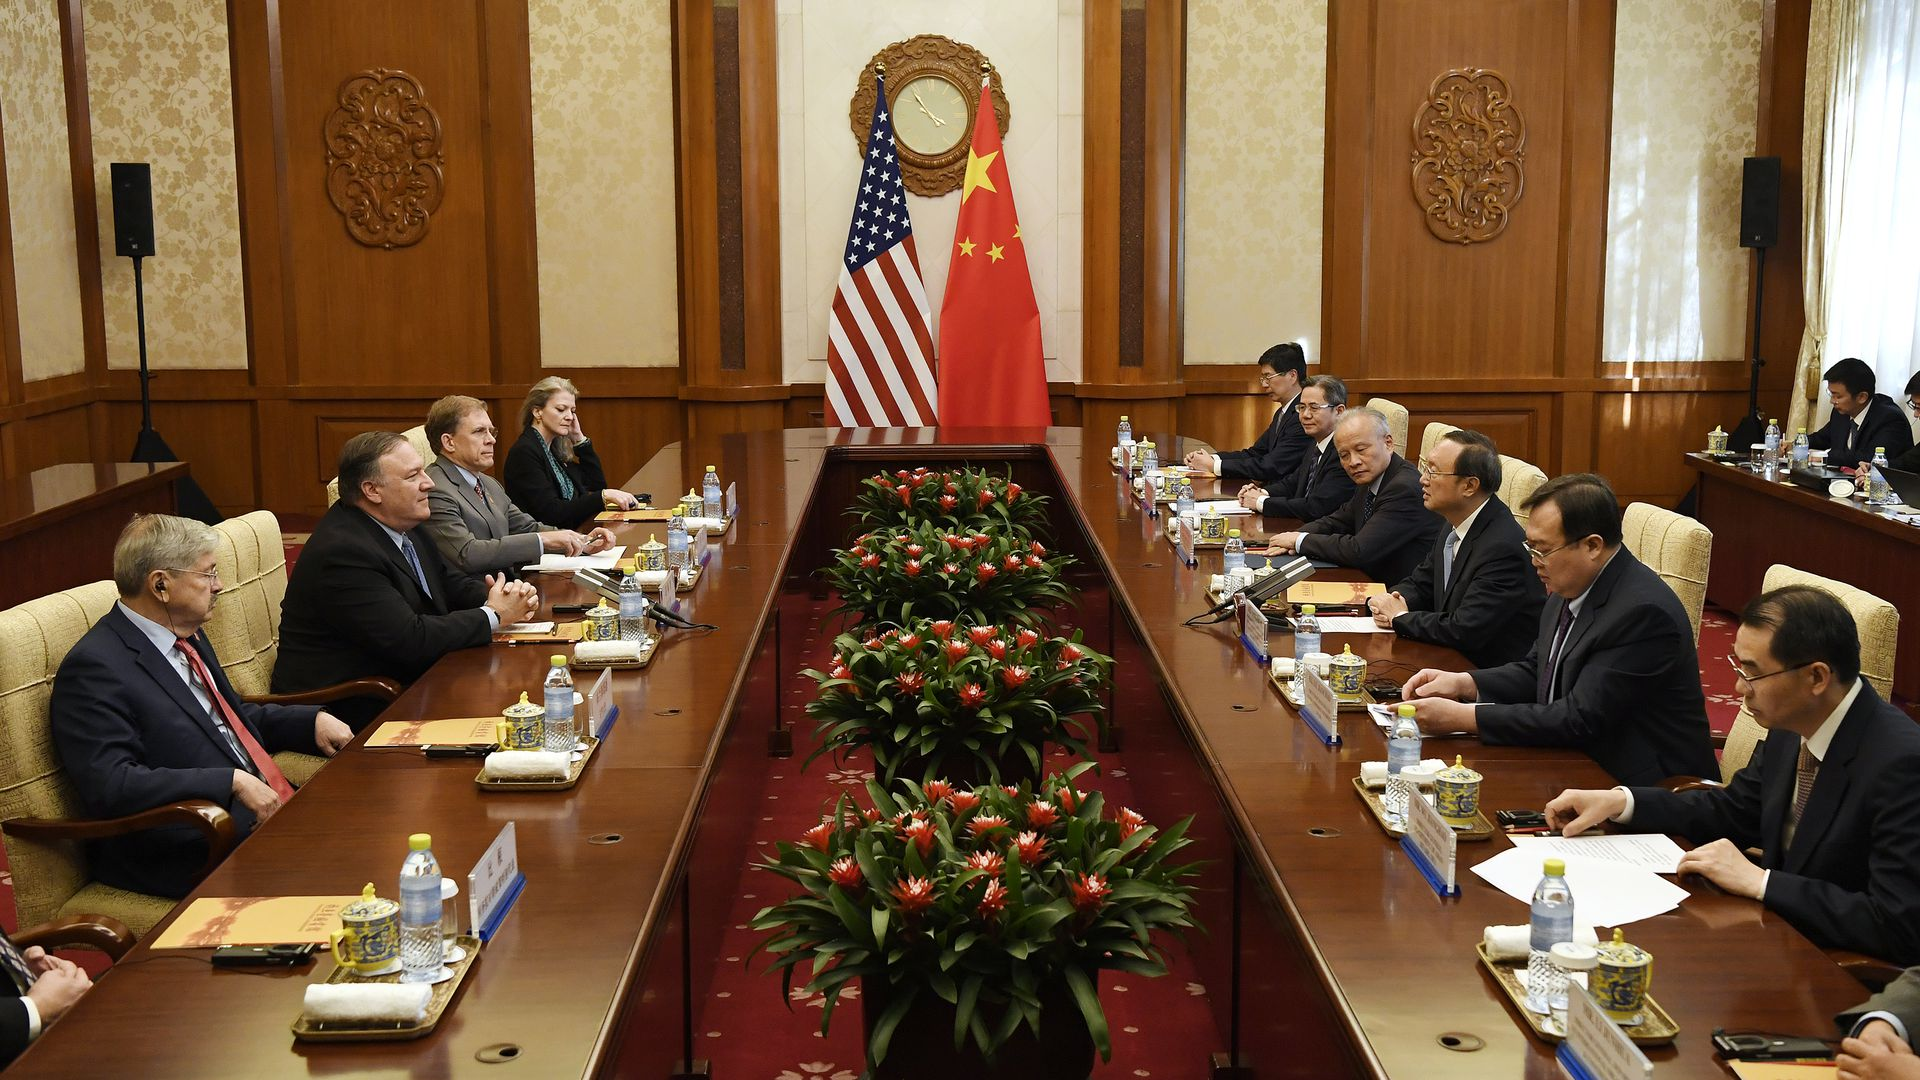 U.S. and Chinese delegations sit across from one another.